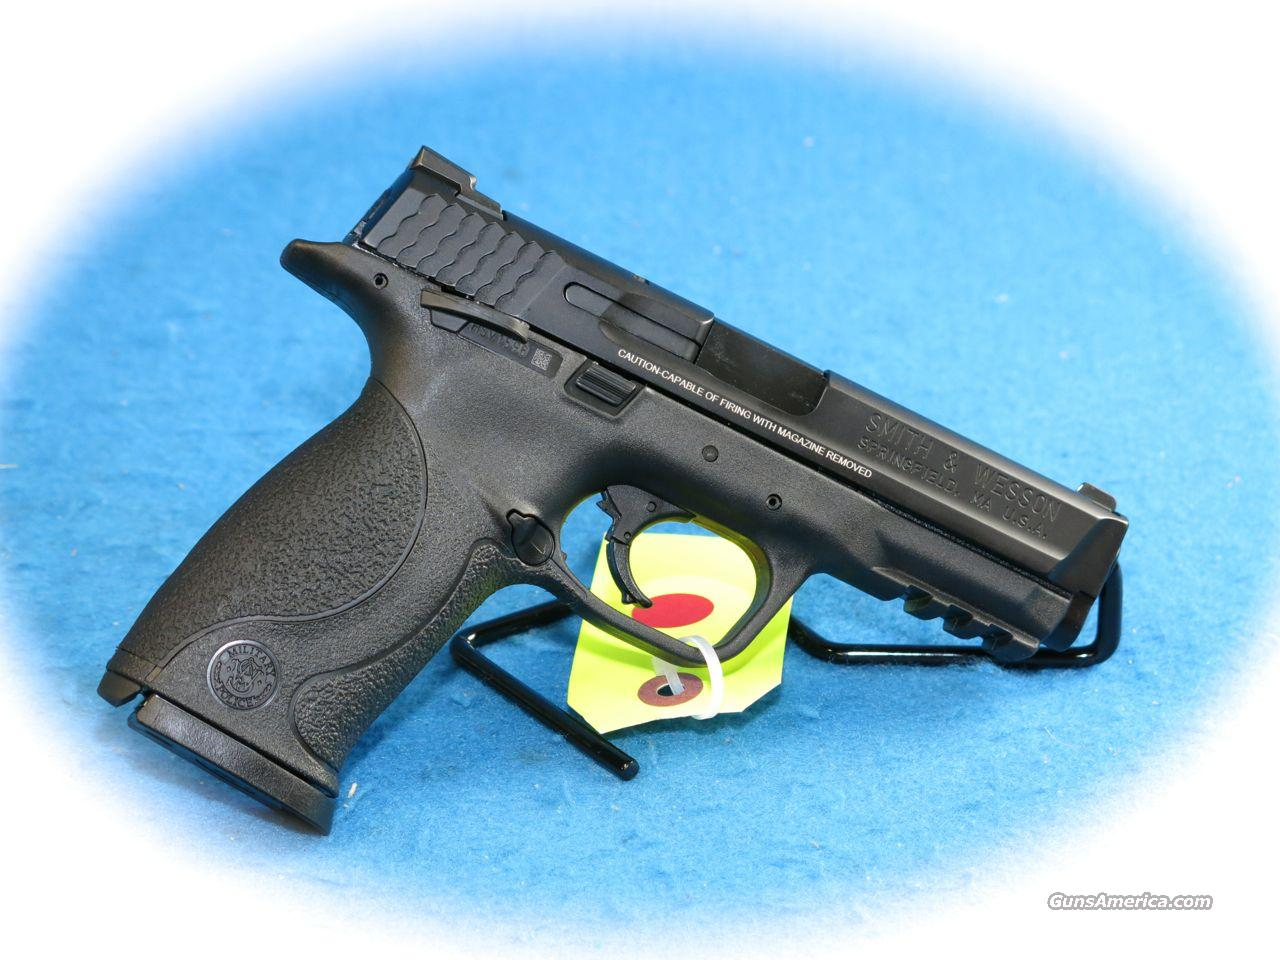 Smith & Wesson M&P9 9mm Semi Auto Pistol w/Thumb Safety **New**  Guns > Pistols > Smith & Wesson Pistols - Autos > Polymer Frame